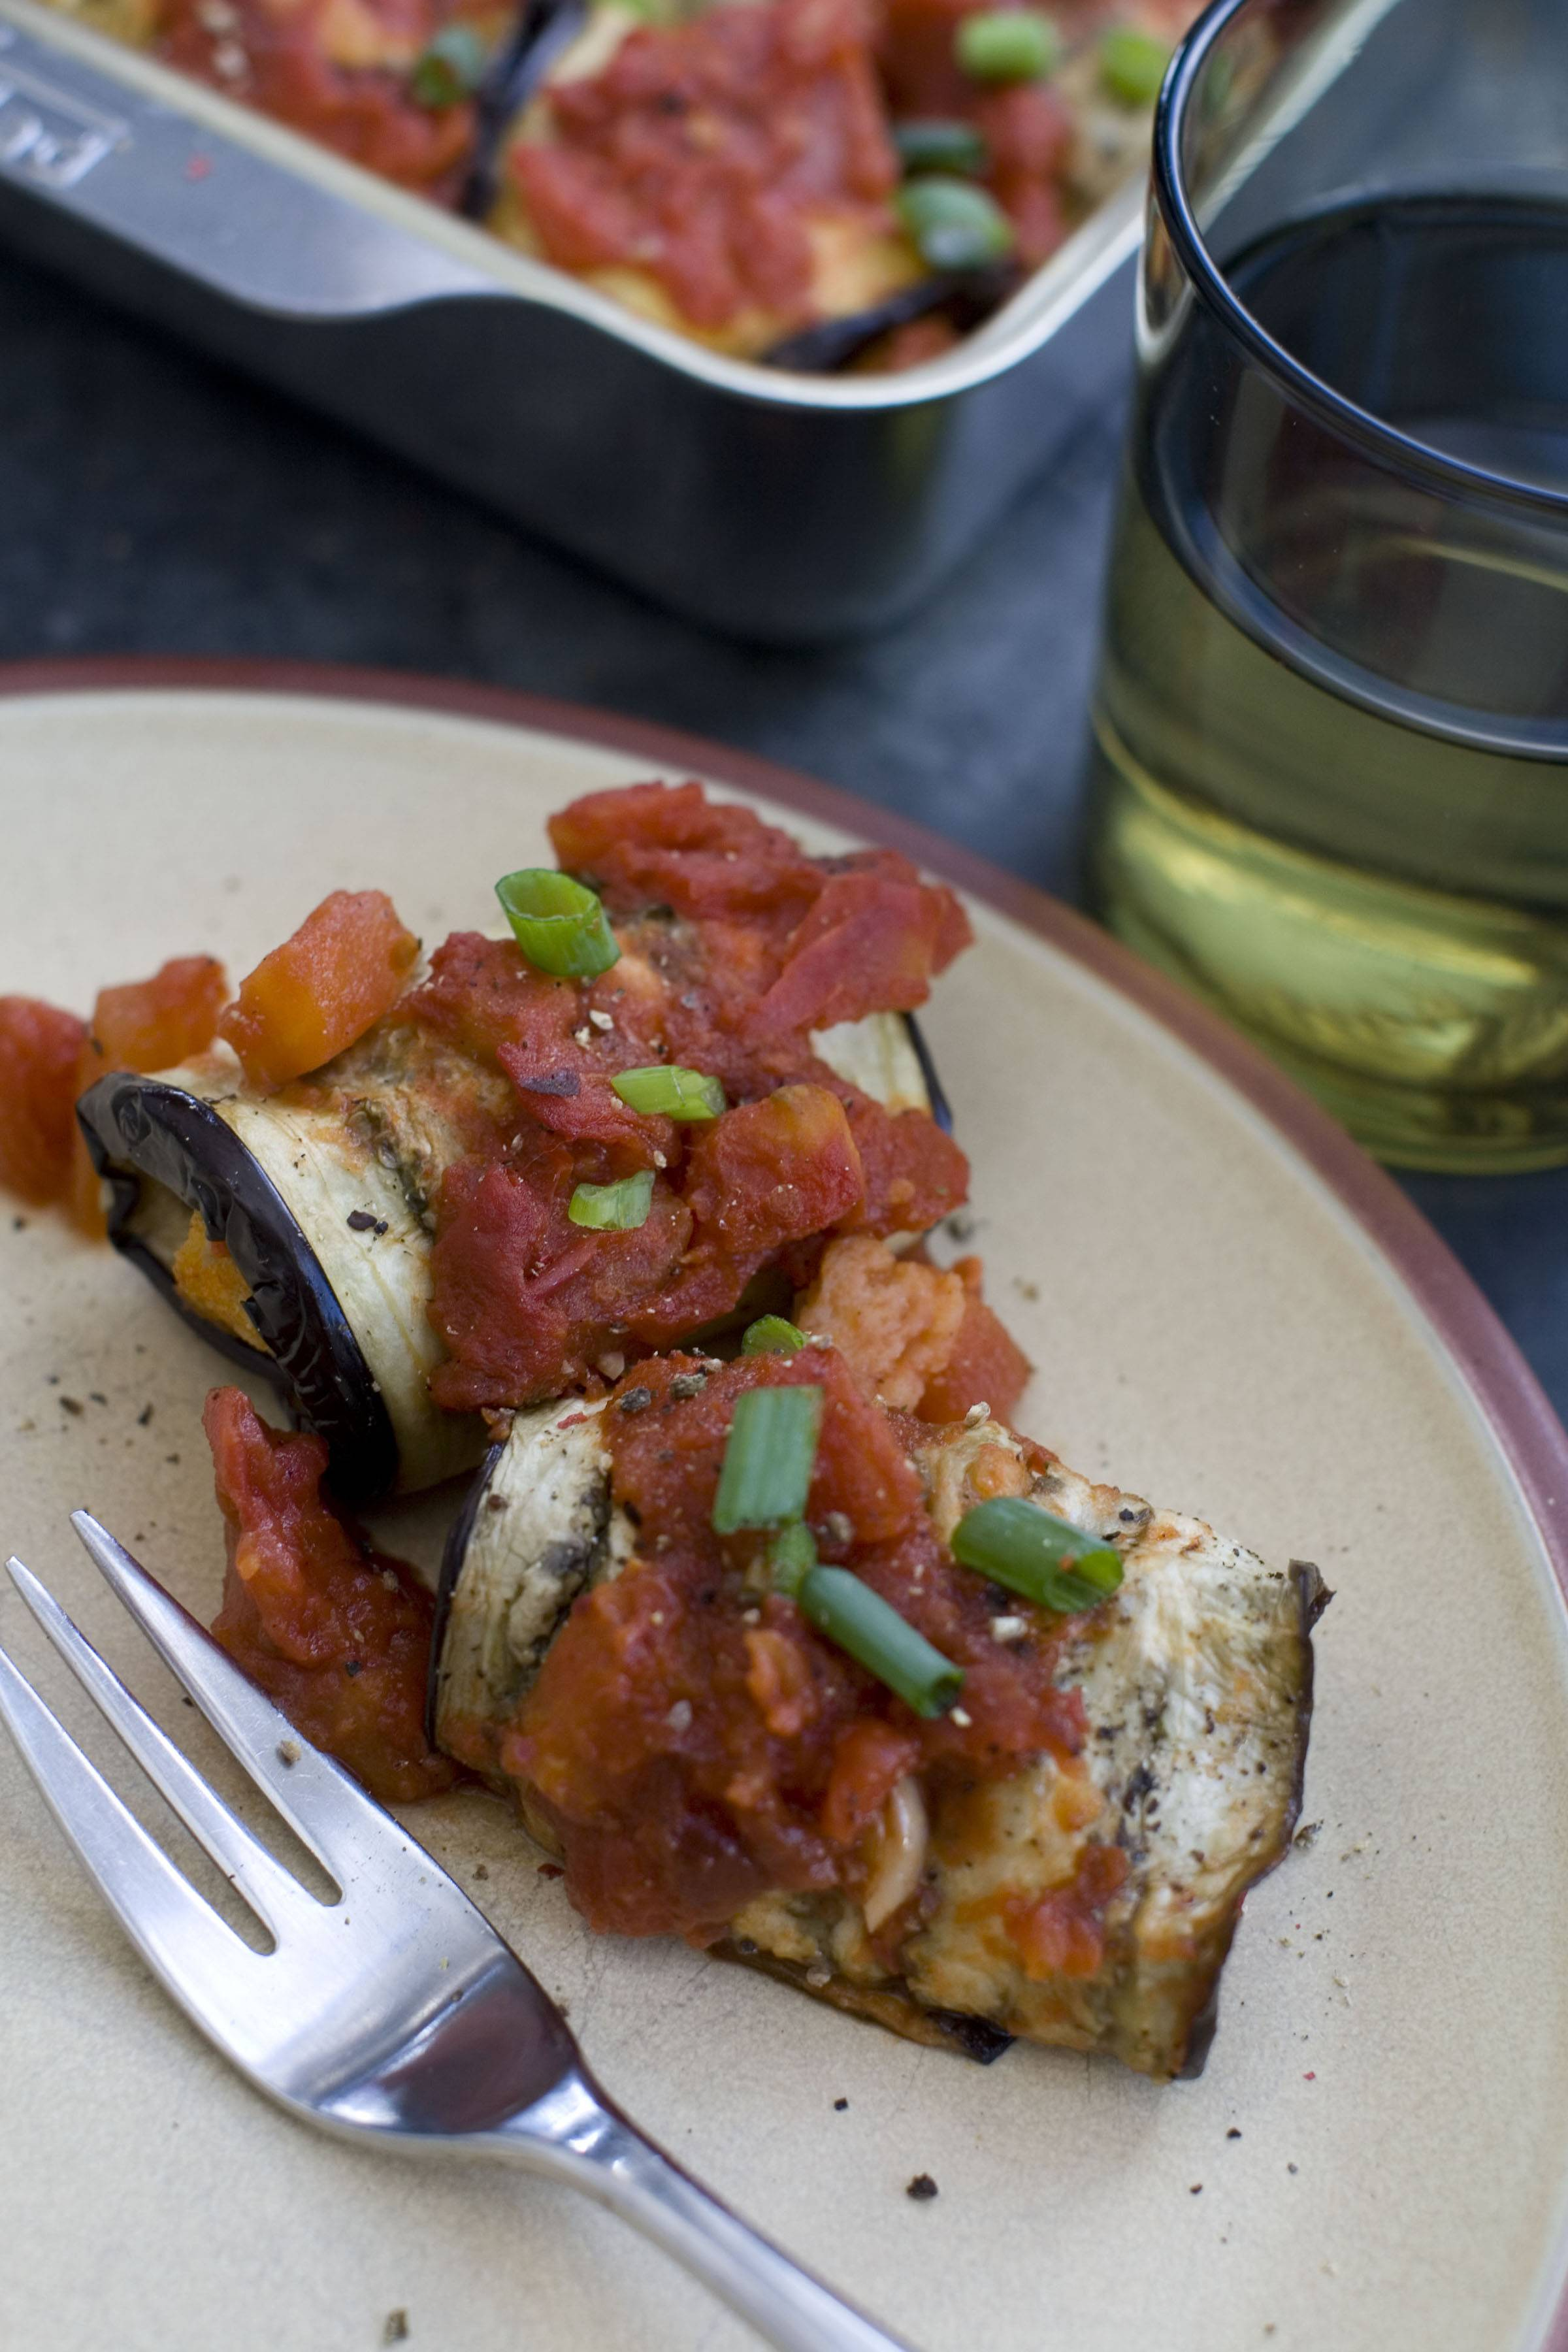 Sara Moulton's Speedy Marinara Sauce pairs well with Inside Out Eggplant Parmesan or your favorite pasta.